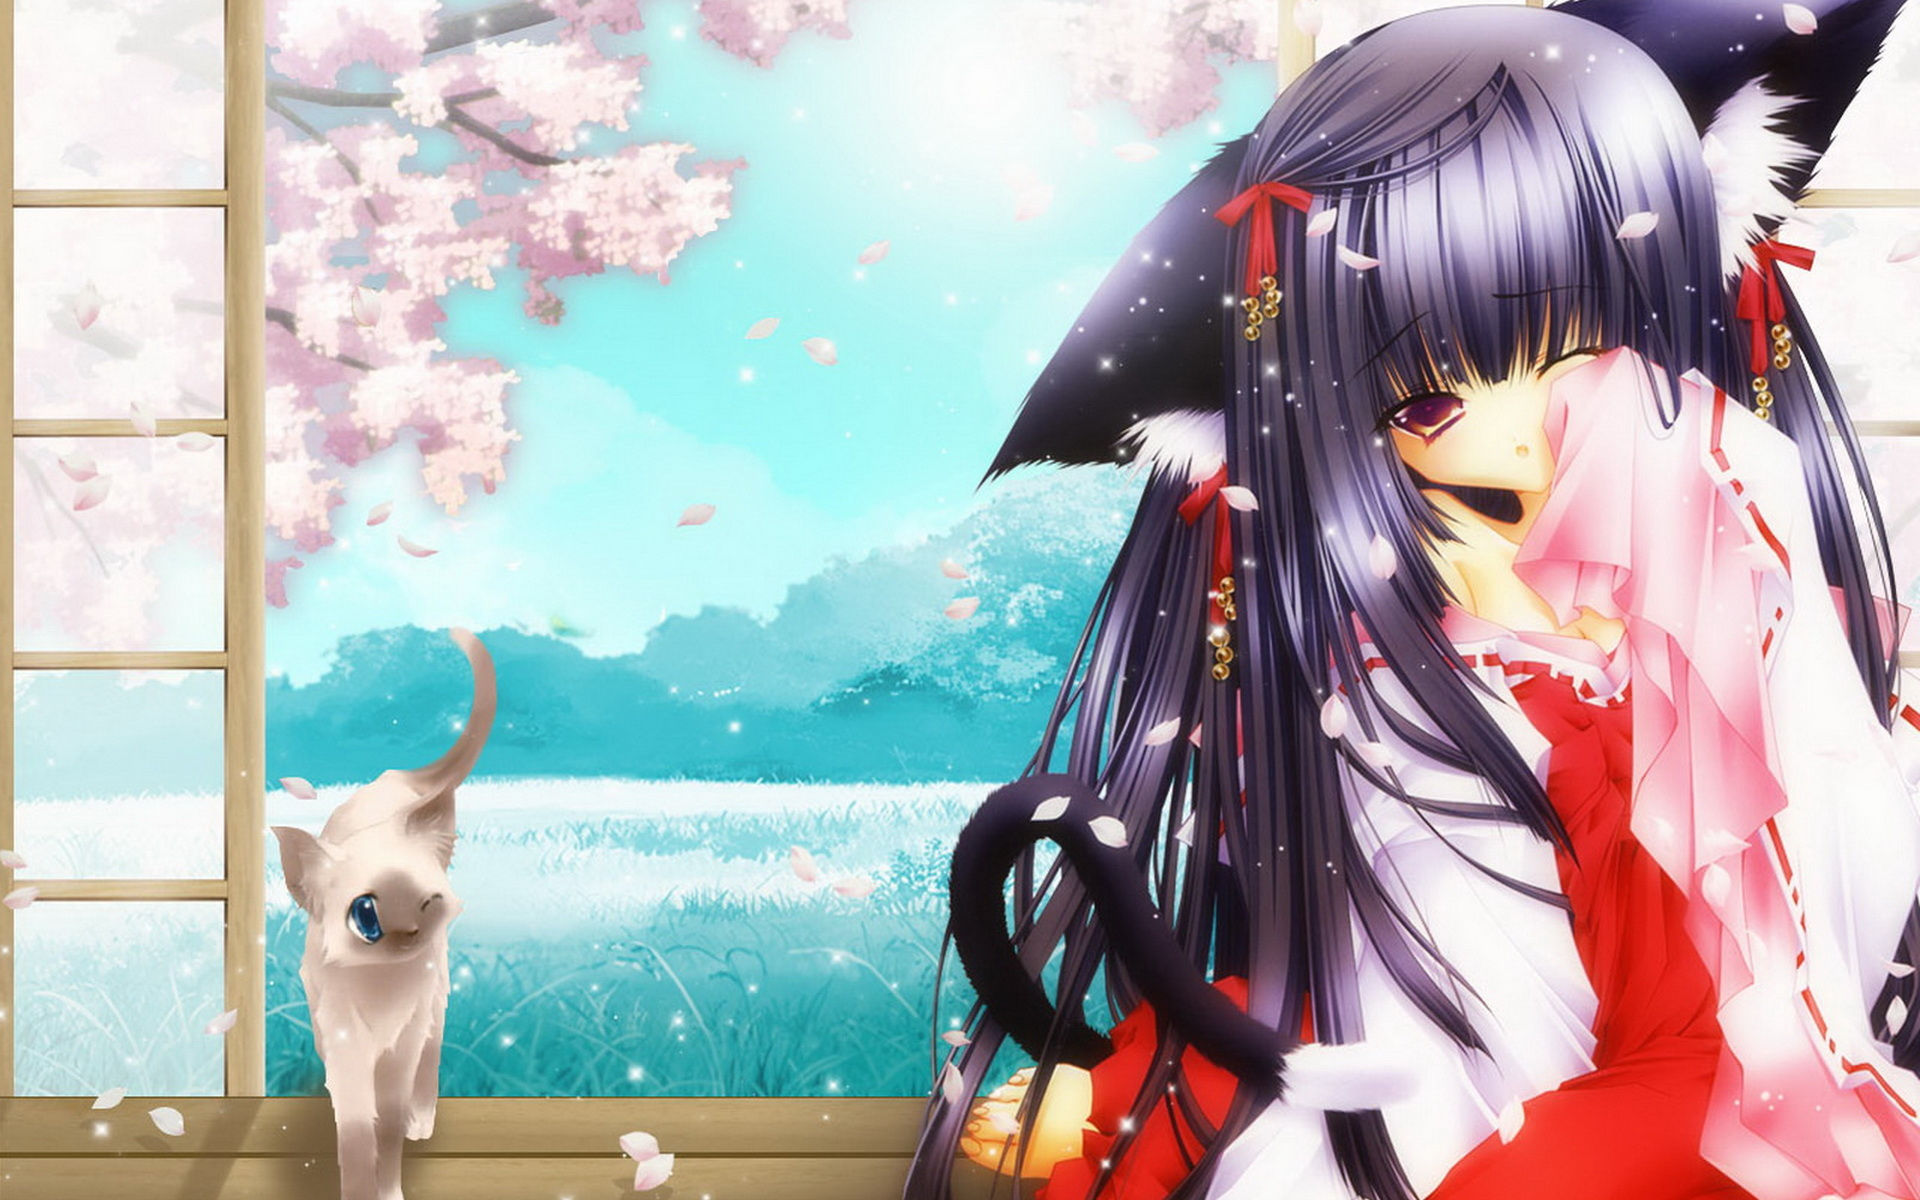 Anime Cat Girl Wallpapers Girl And Cat 1920x1200 1920x1200